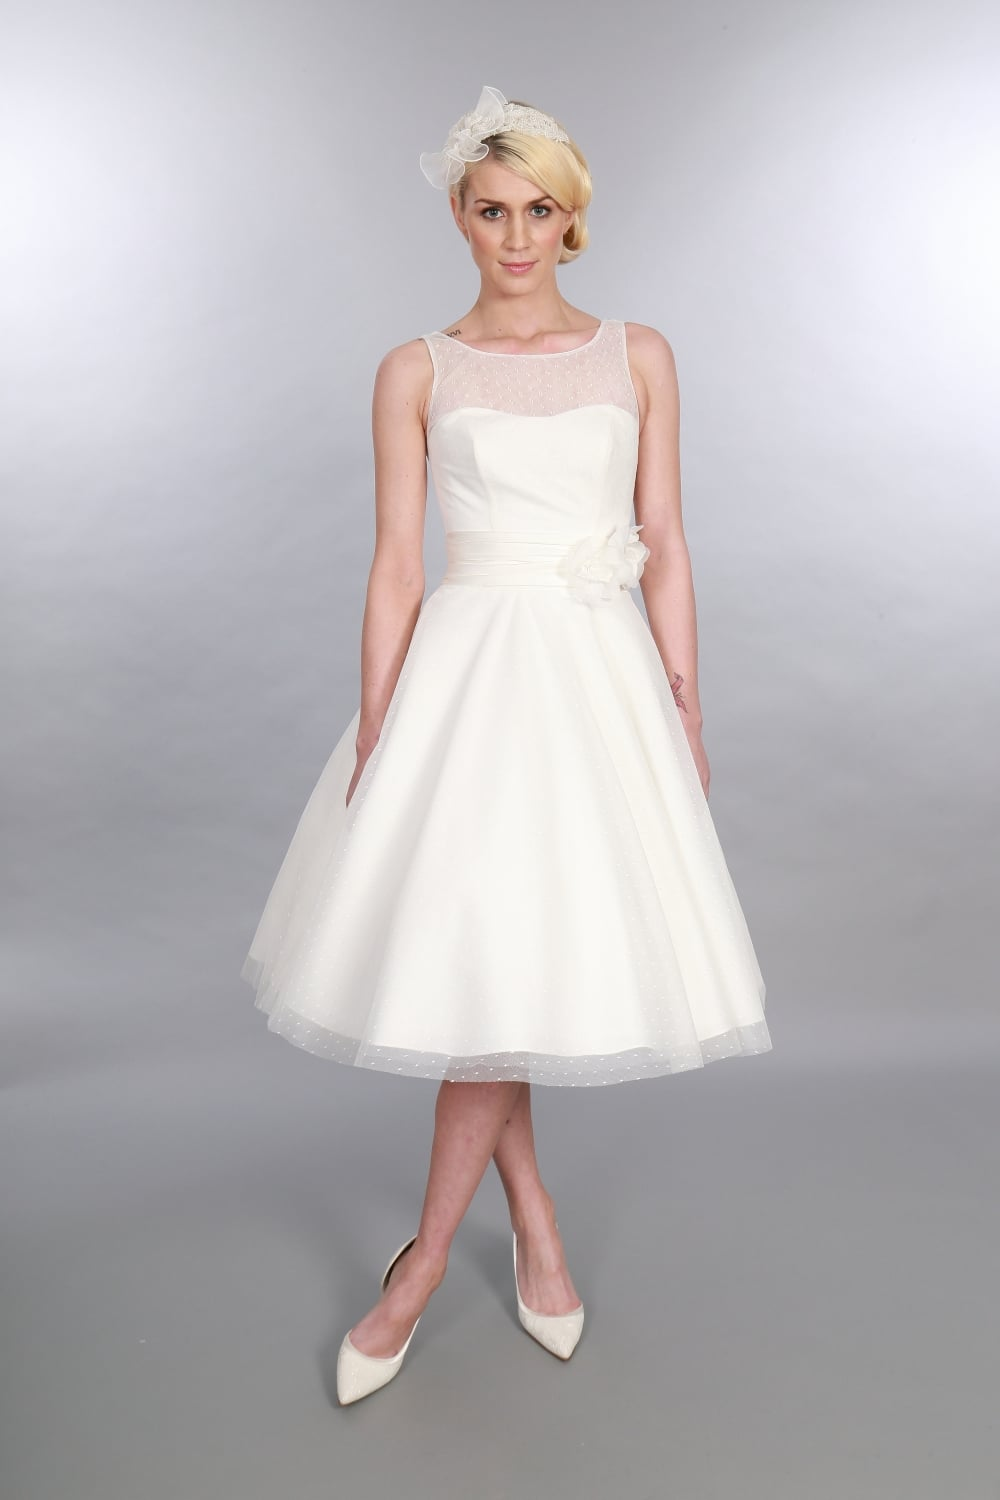 vintage style wedding dresses with sleeves 50s style wedding dresses Vintage Style Wedding Dresses With Sleeves 71